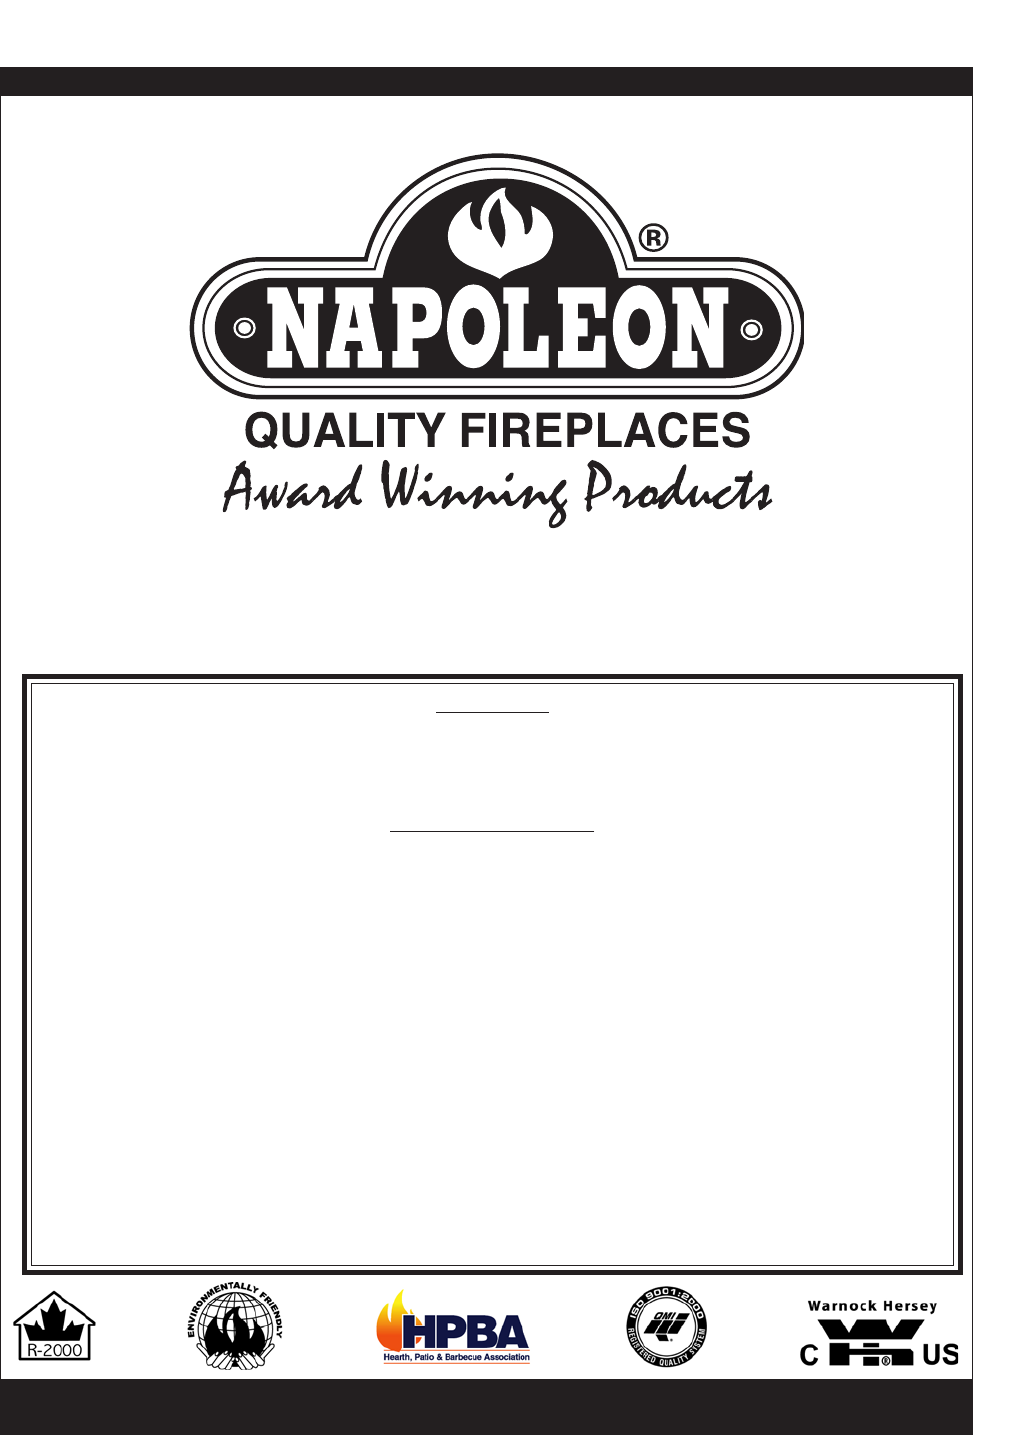 napoleon fireplaces stove 1401 user guide manualsonline com